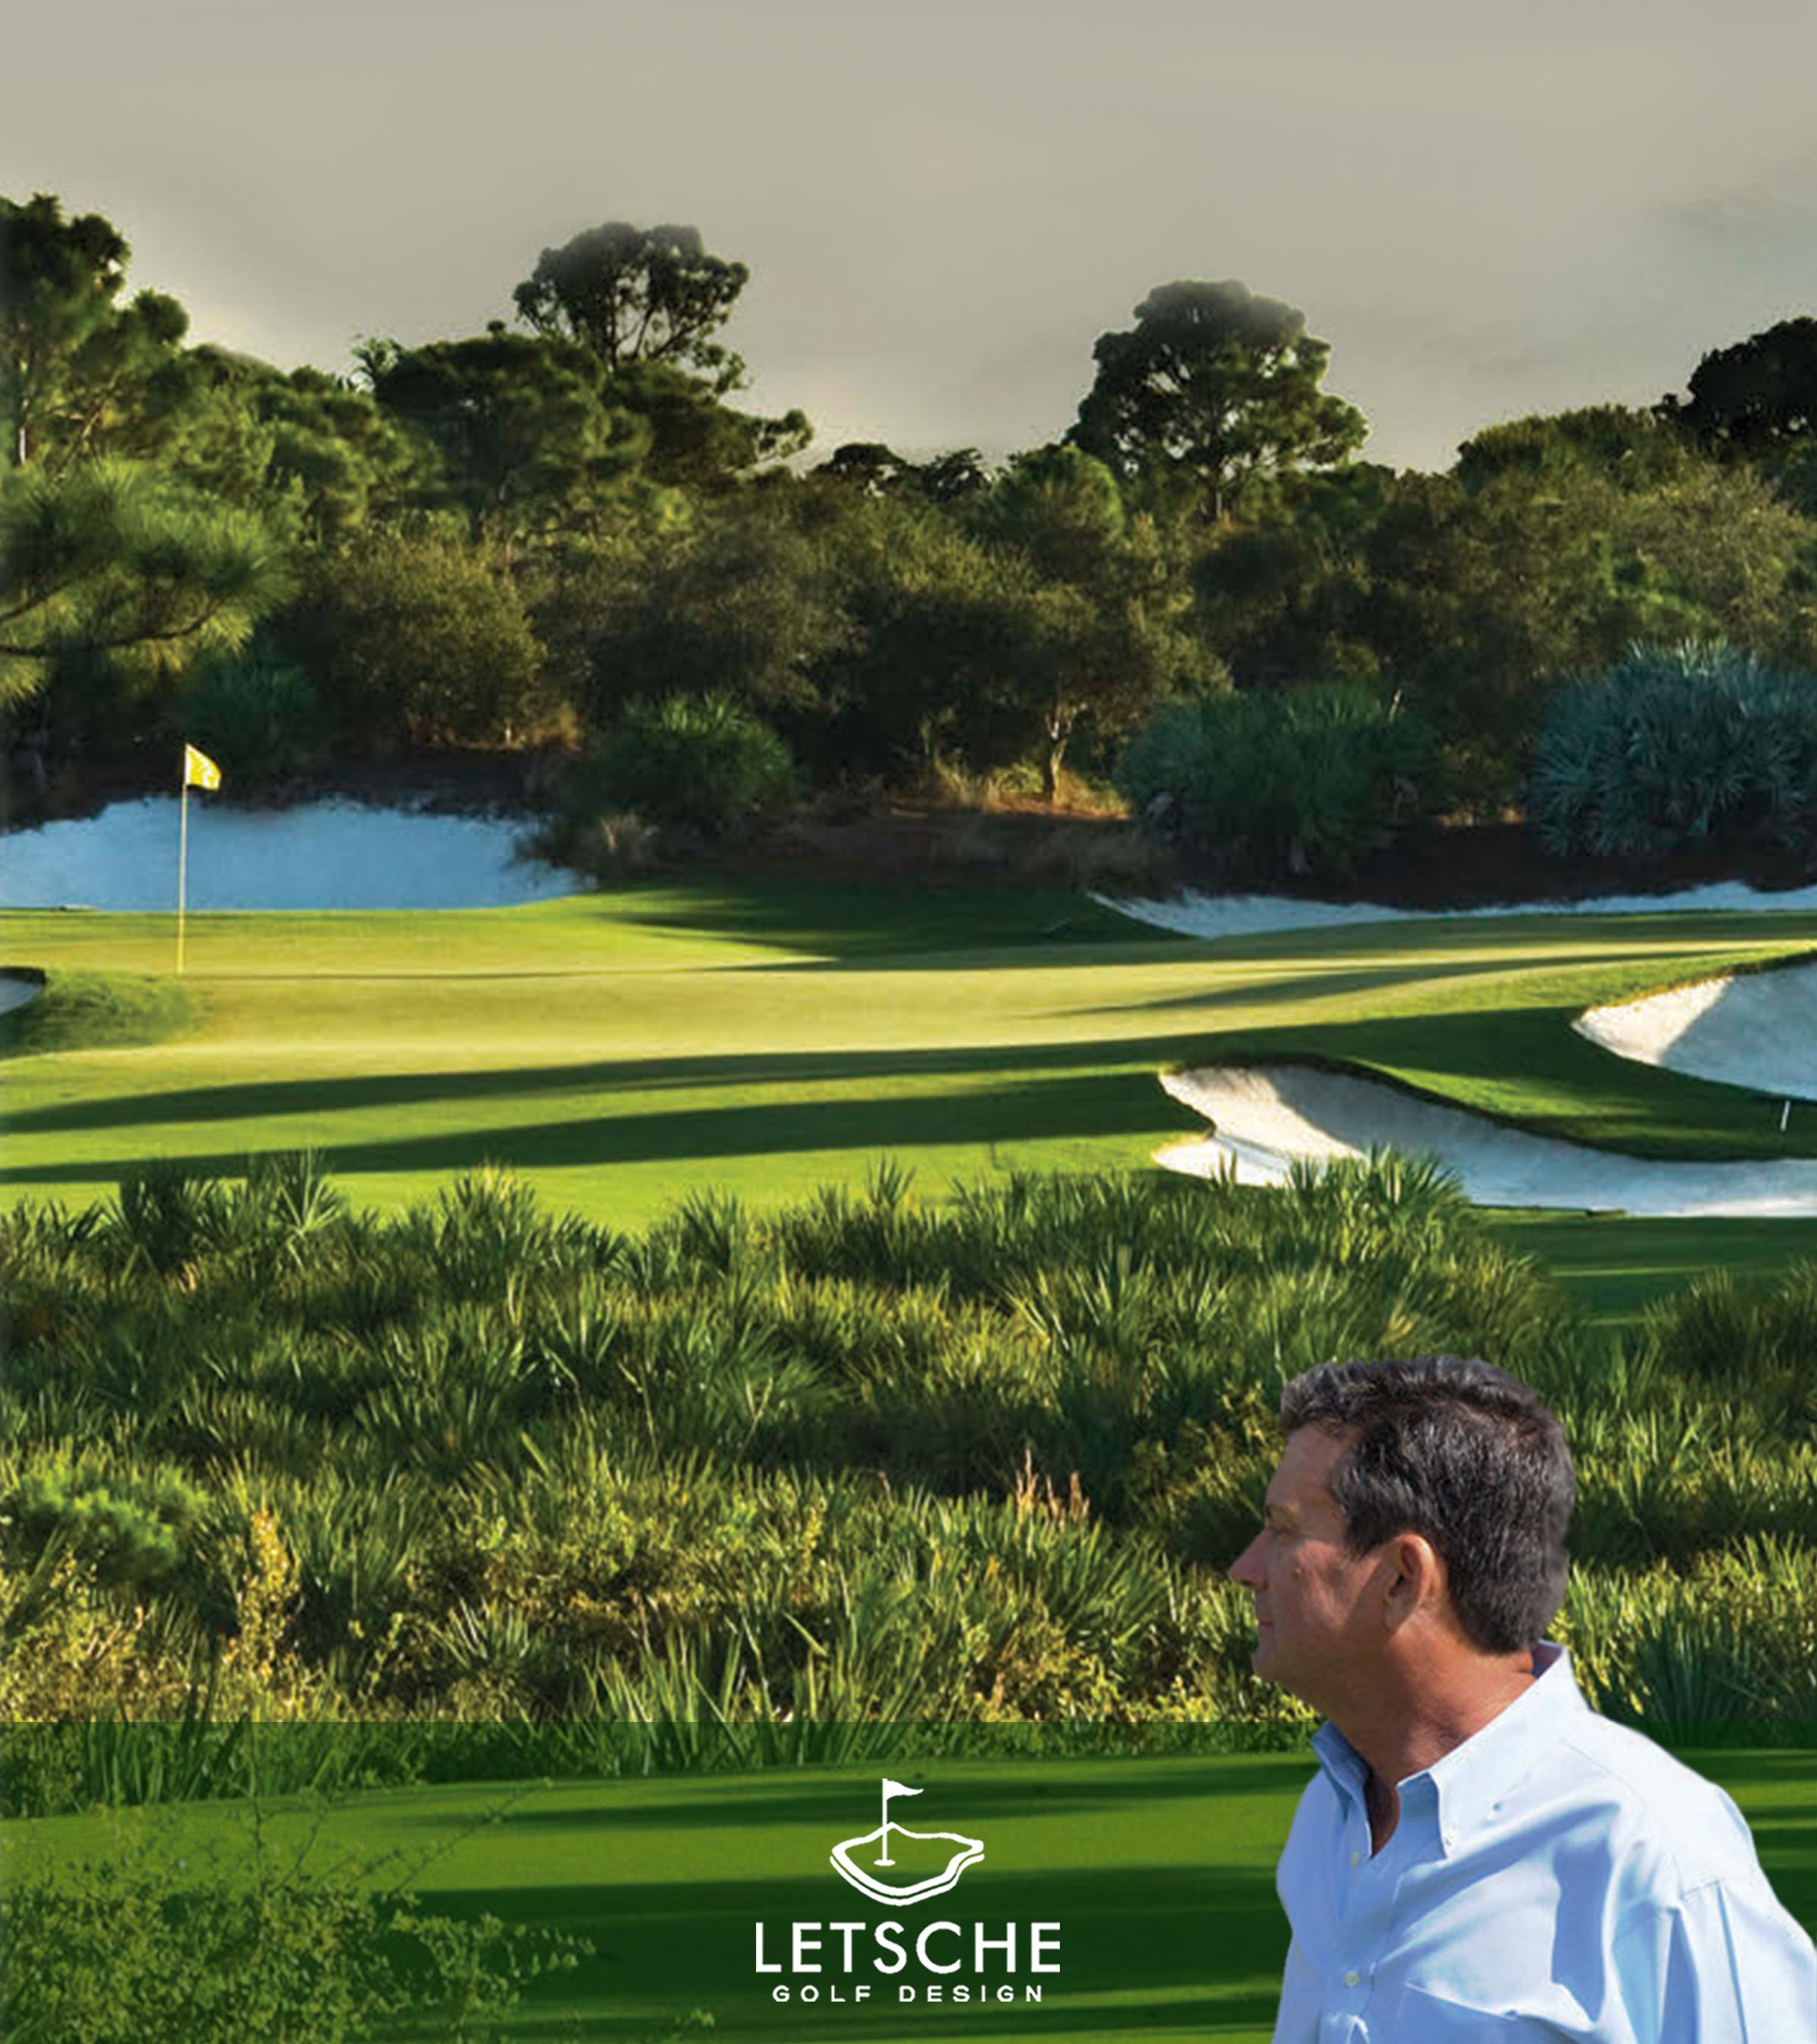 Home - Letsche Design - Golf Course Design